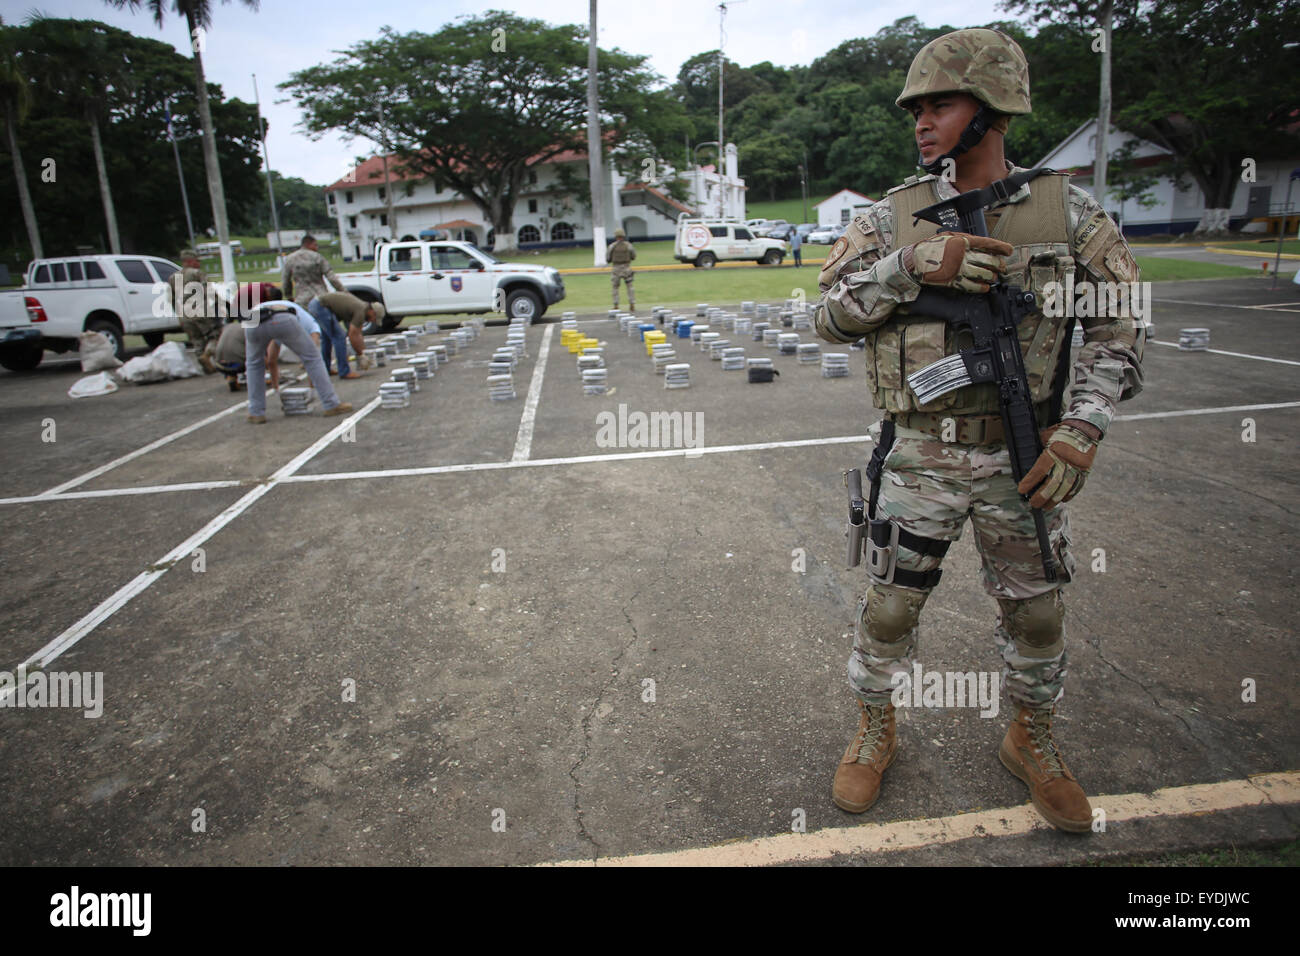 Panama City, Panama. 27th July, 2015. Elements of the National Air and Naval Service (SENAN) guard drug packages - Stock Image